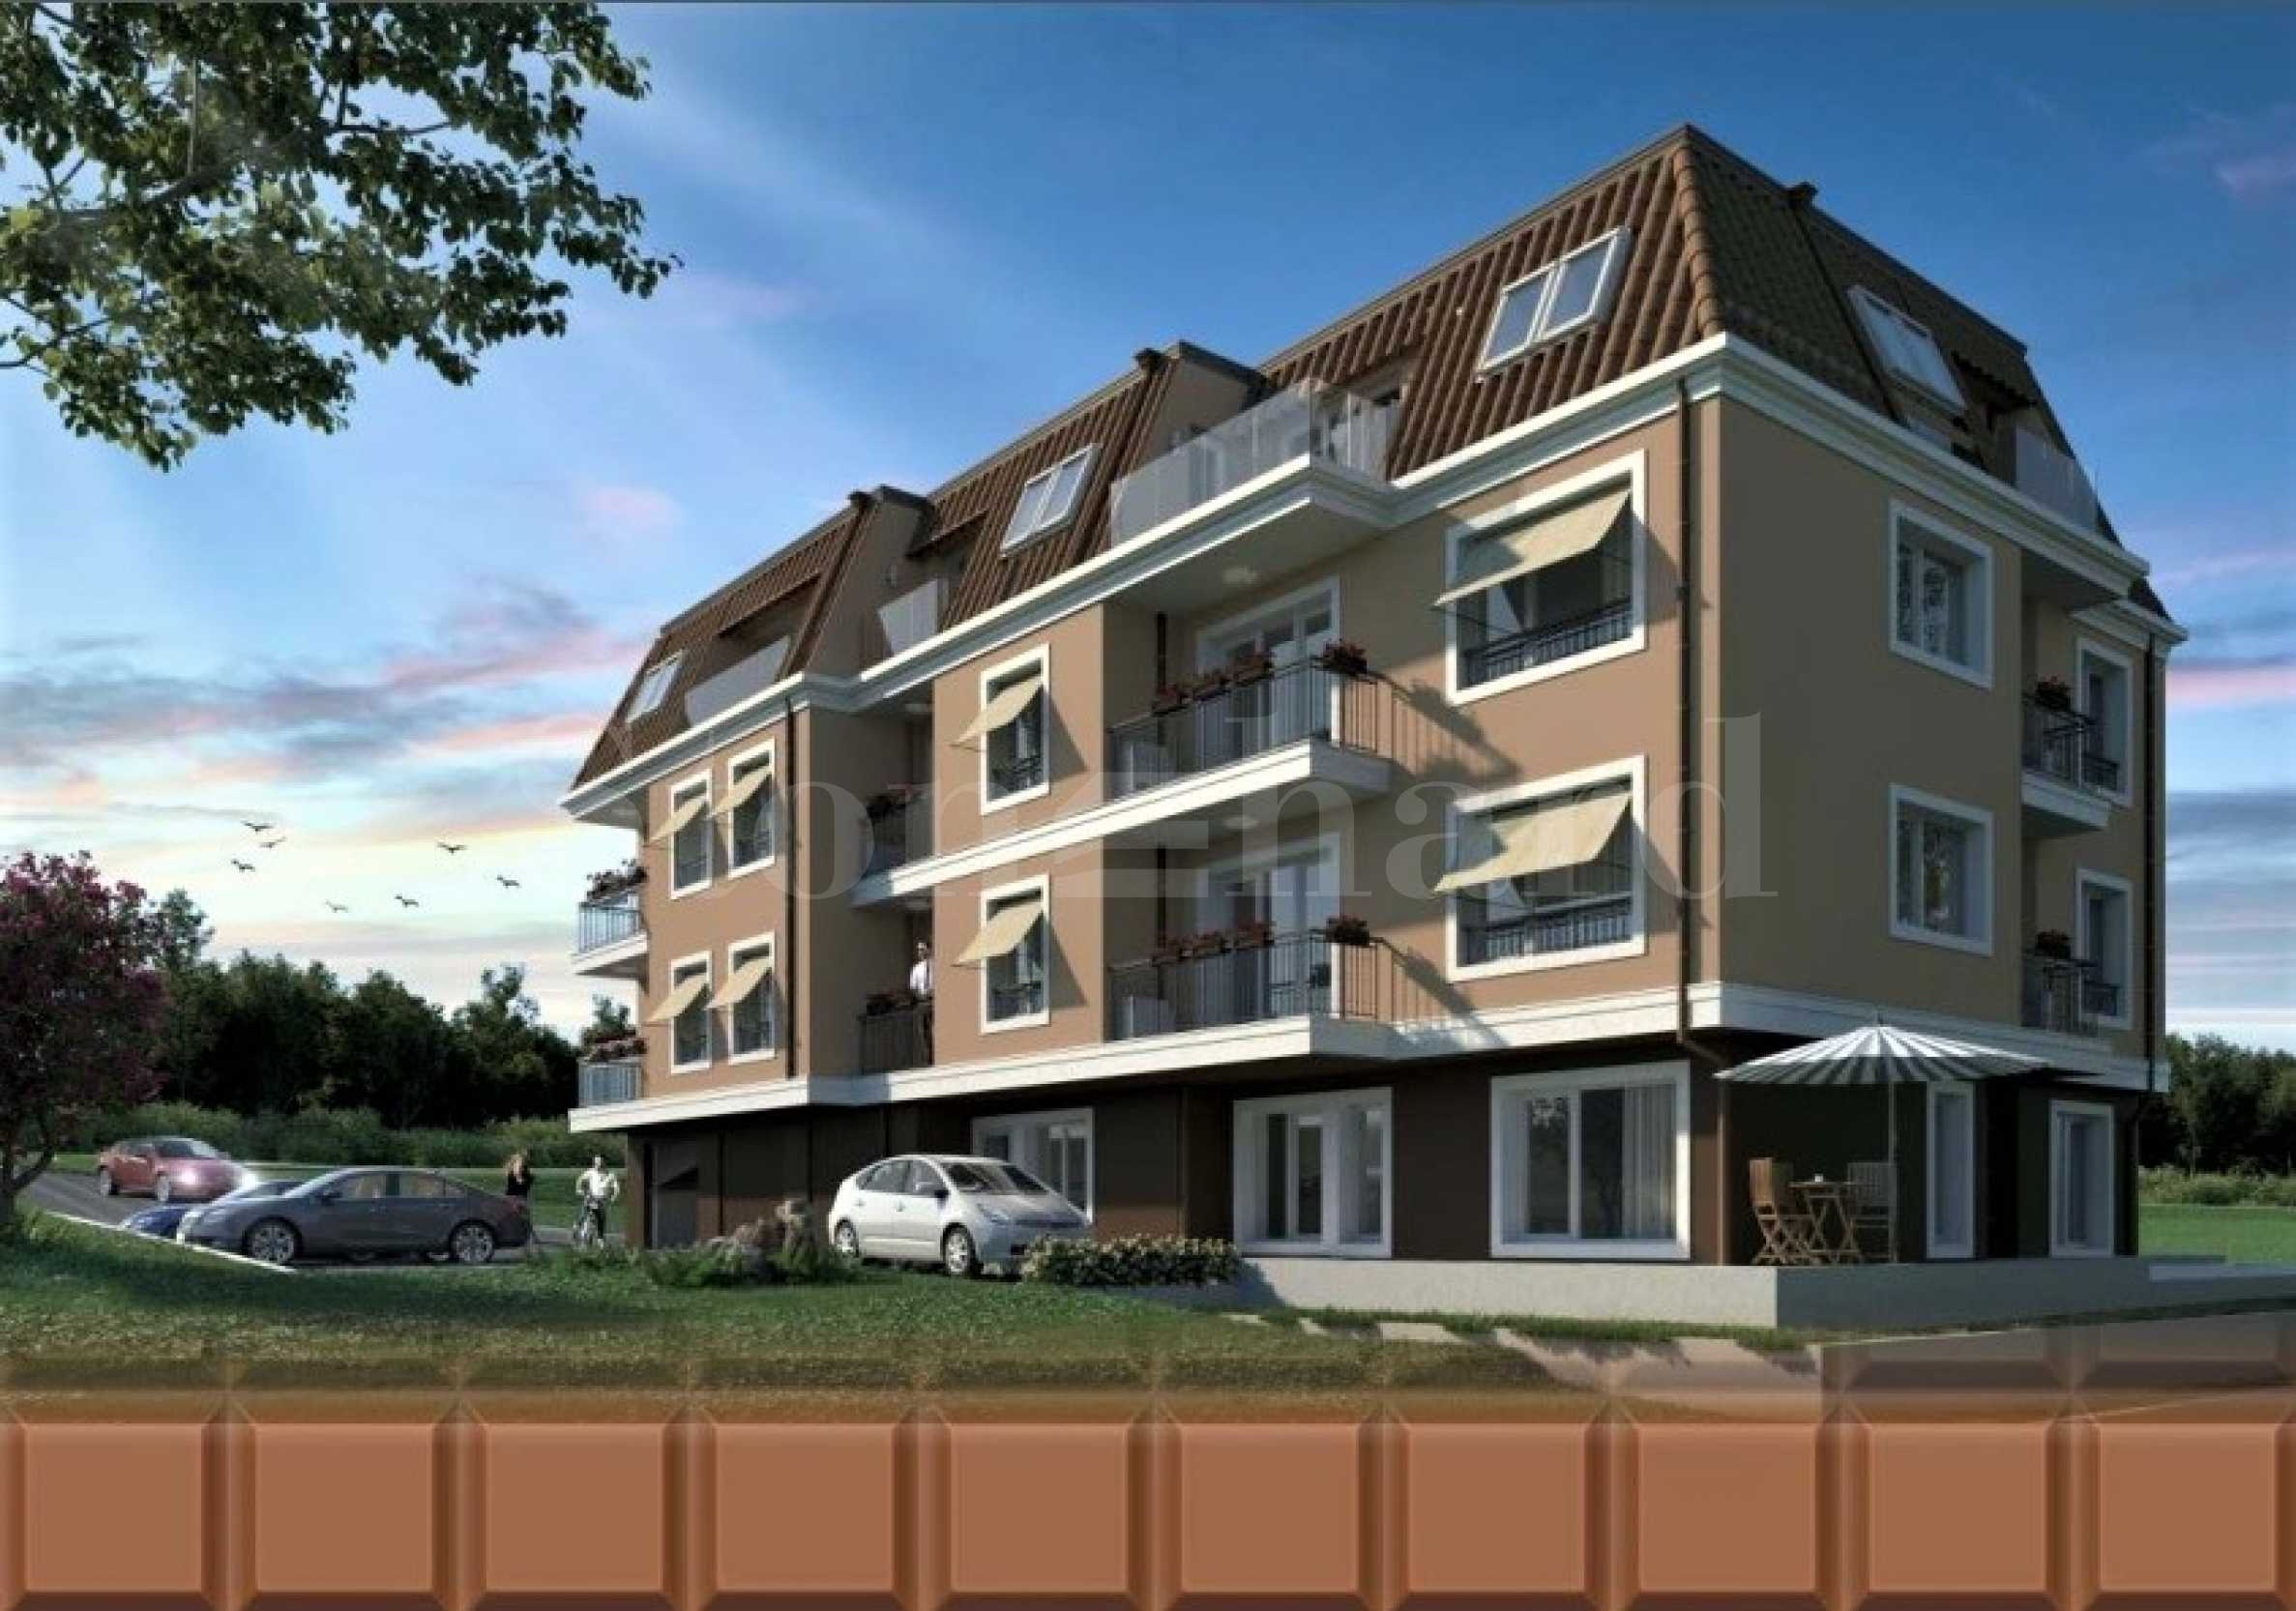 Apartments and parking spaces for sale in a new attractive building1 - Stonehard